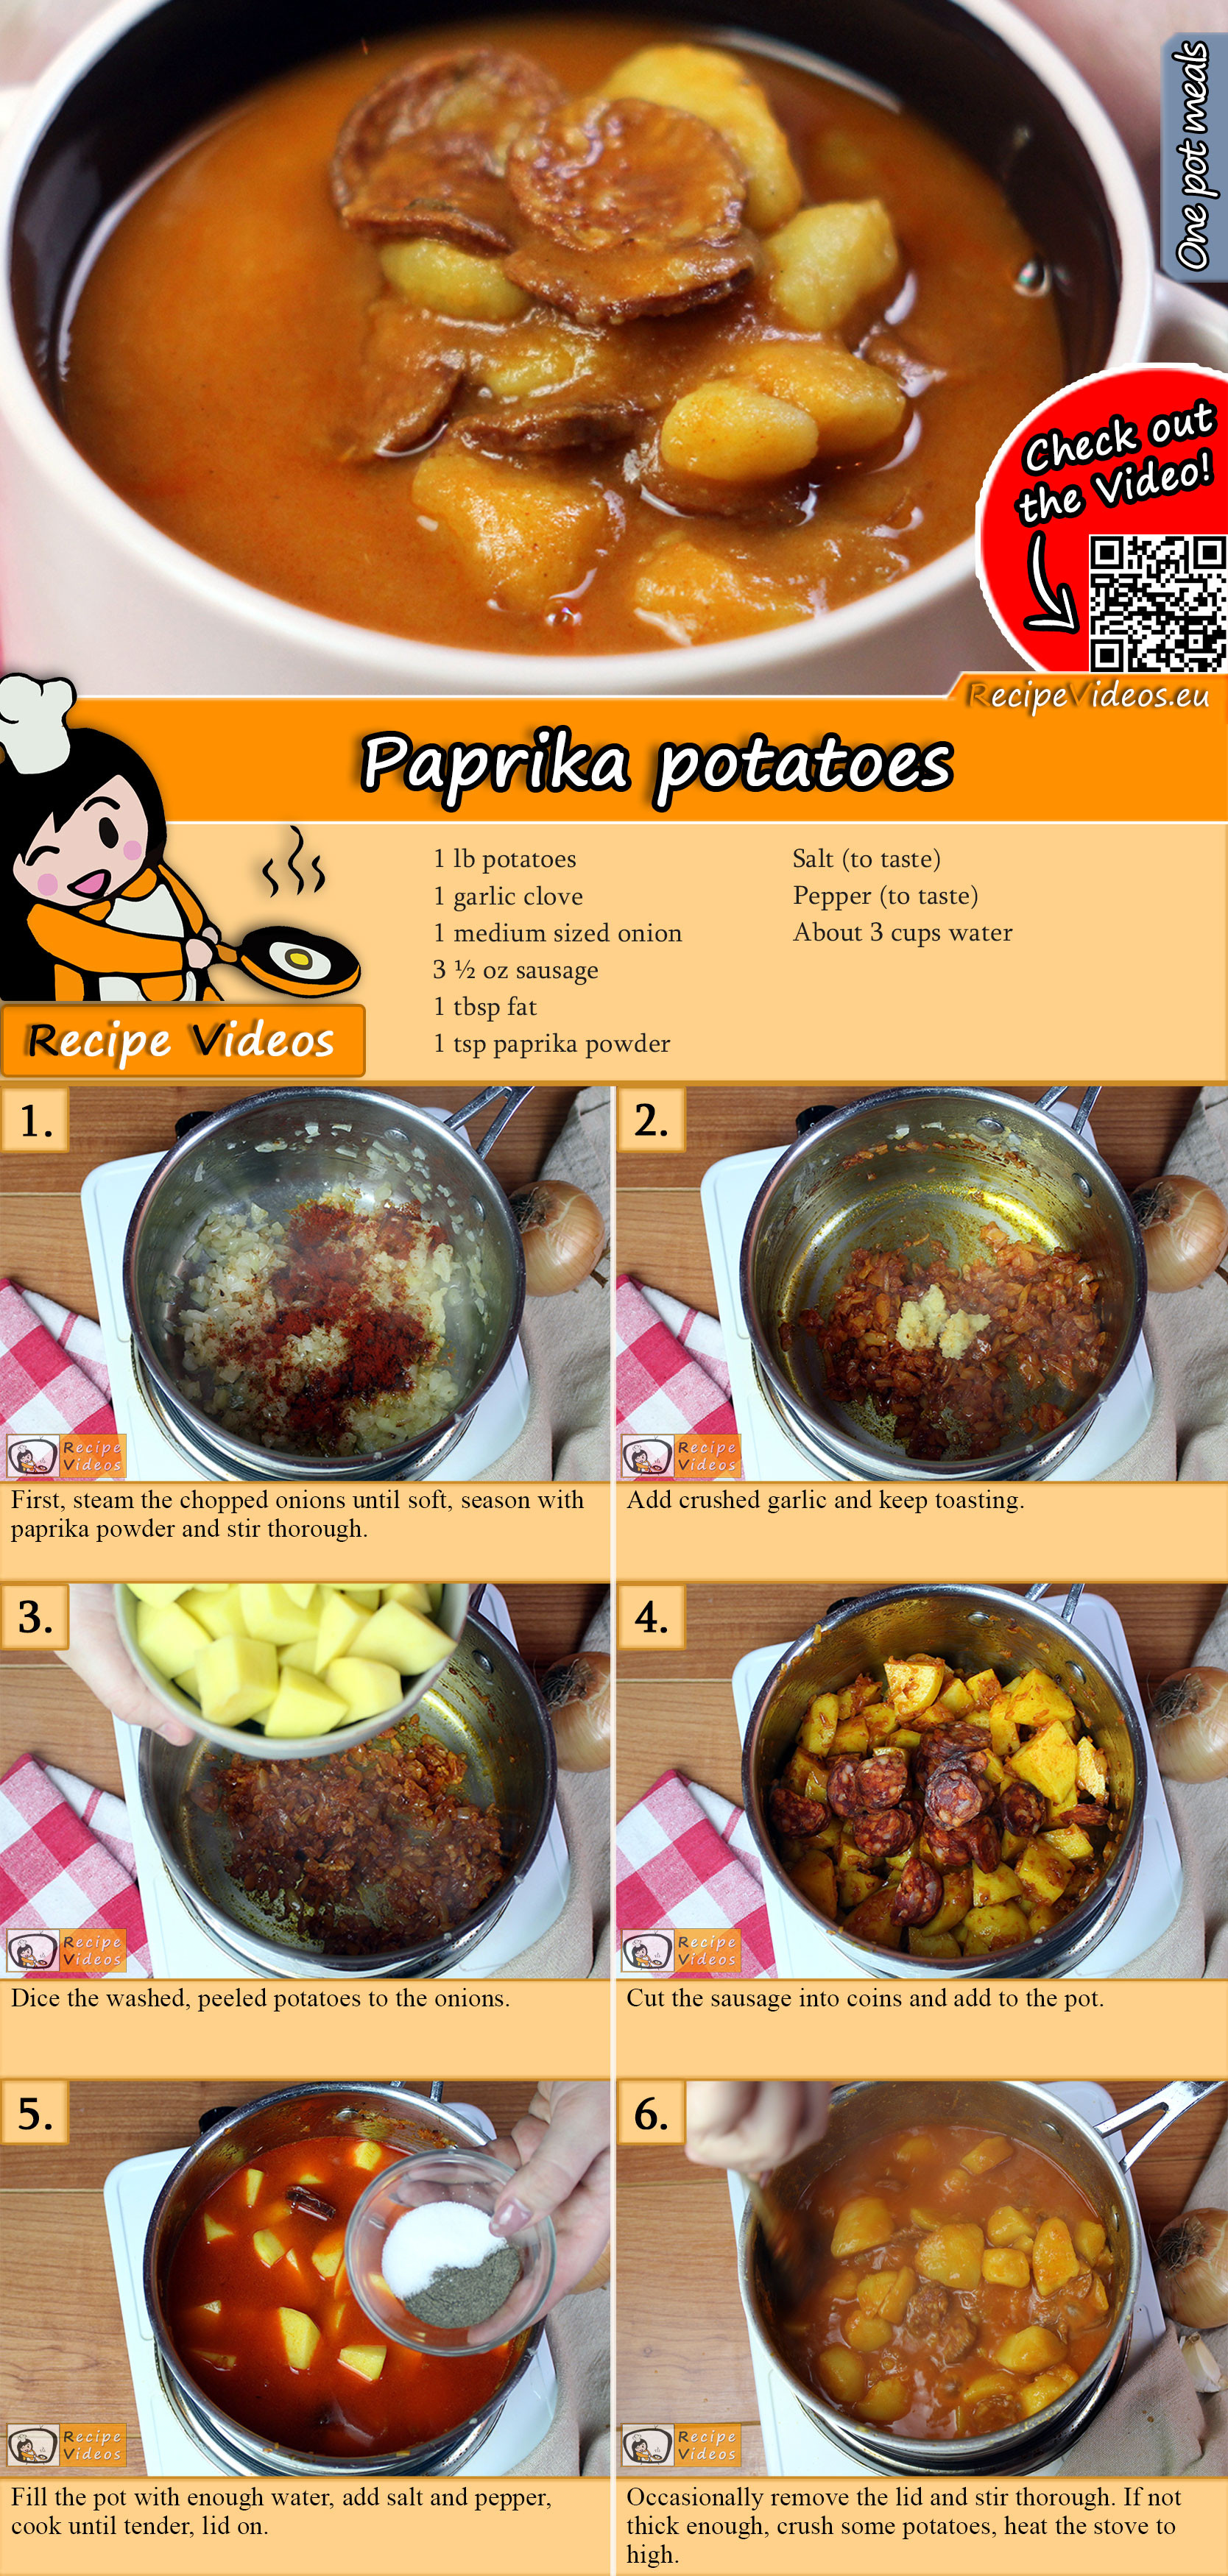 Paprika potatoes recipe with video